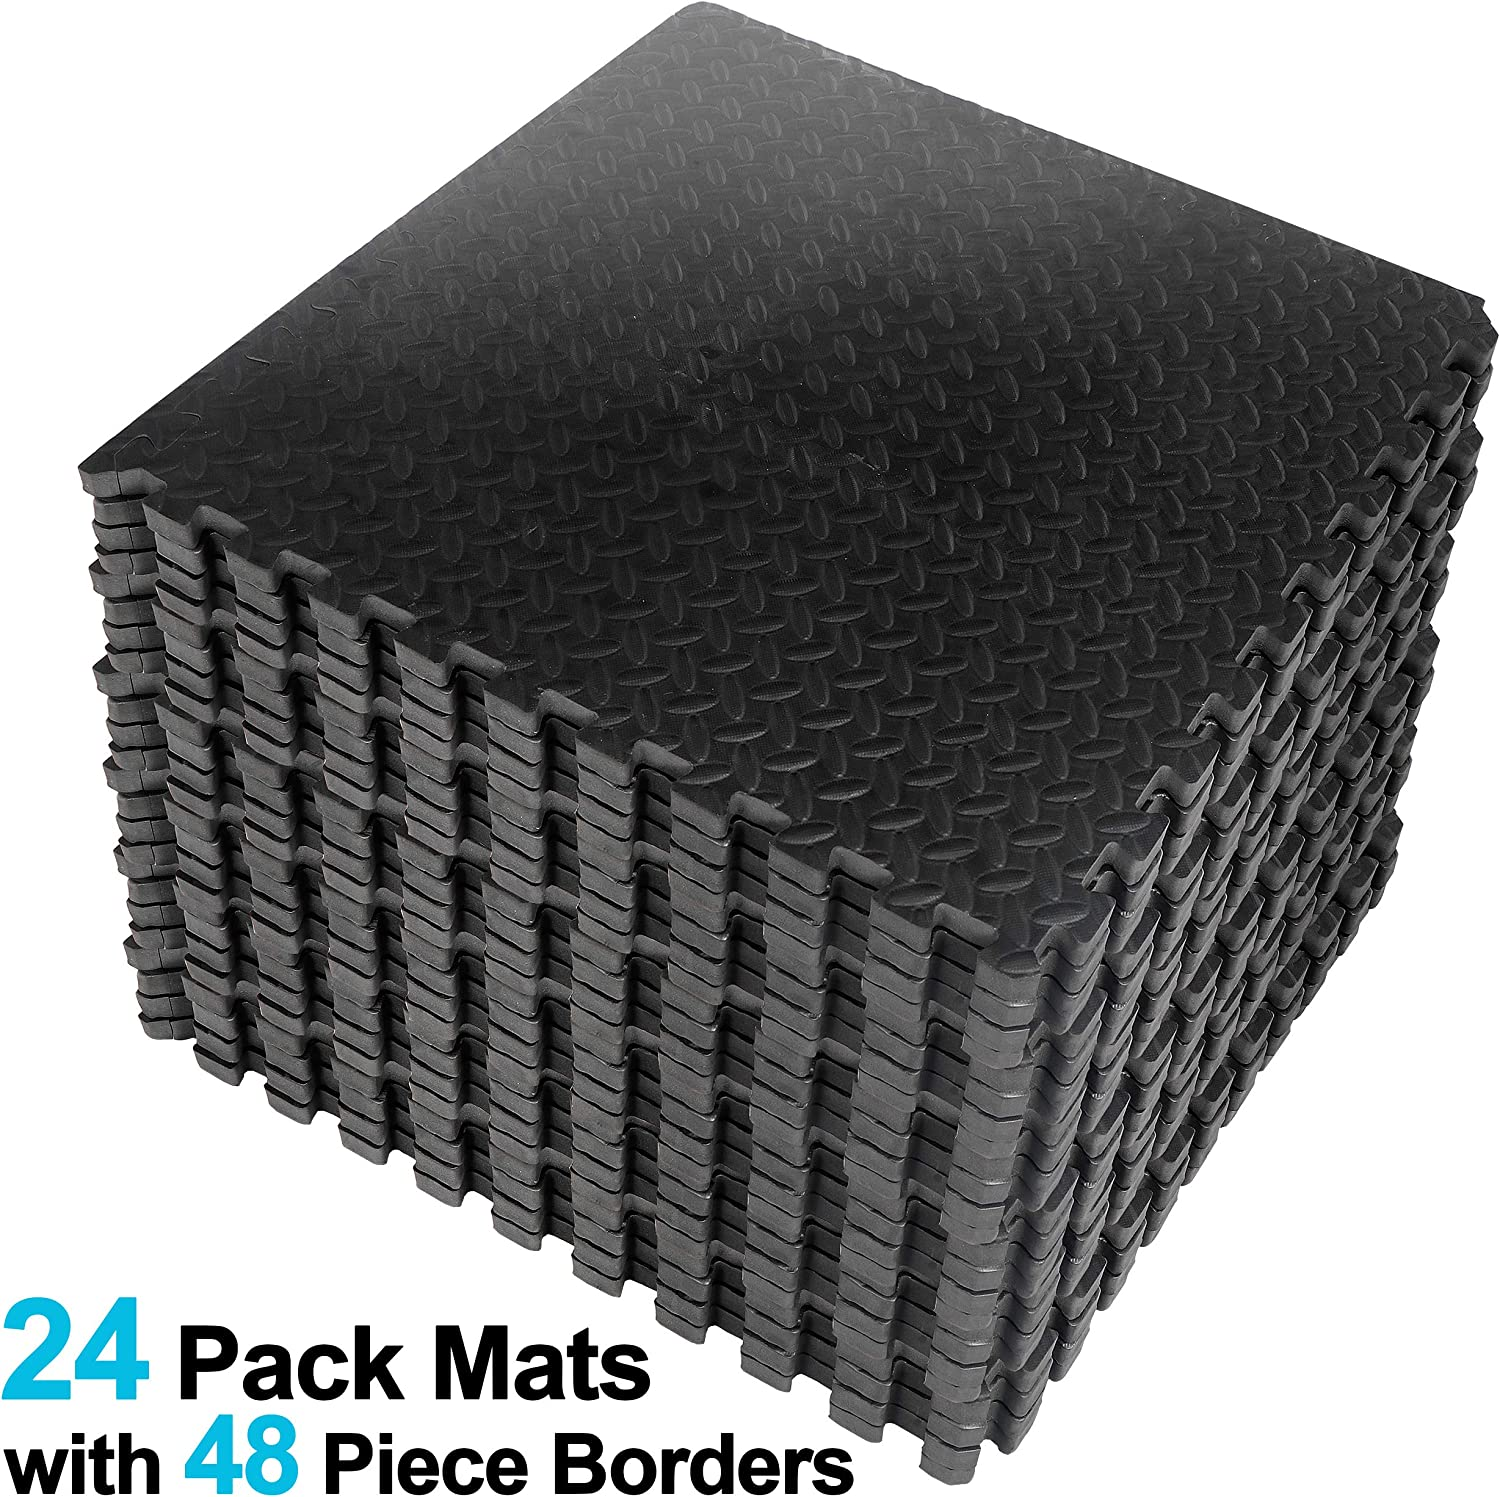 ZENY Exercise Mat with EVA Foam Interlocking Tiles and Edge Pieces Extra Think 3//4/'/' for Exercise 24 Tiles,48 Borders MMA Gymnastics and Home Gym Yoga and Floor Protection 96 SQ.FT